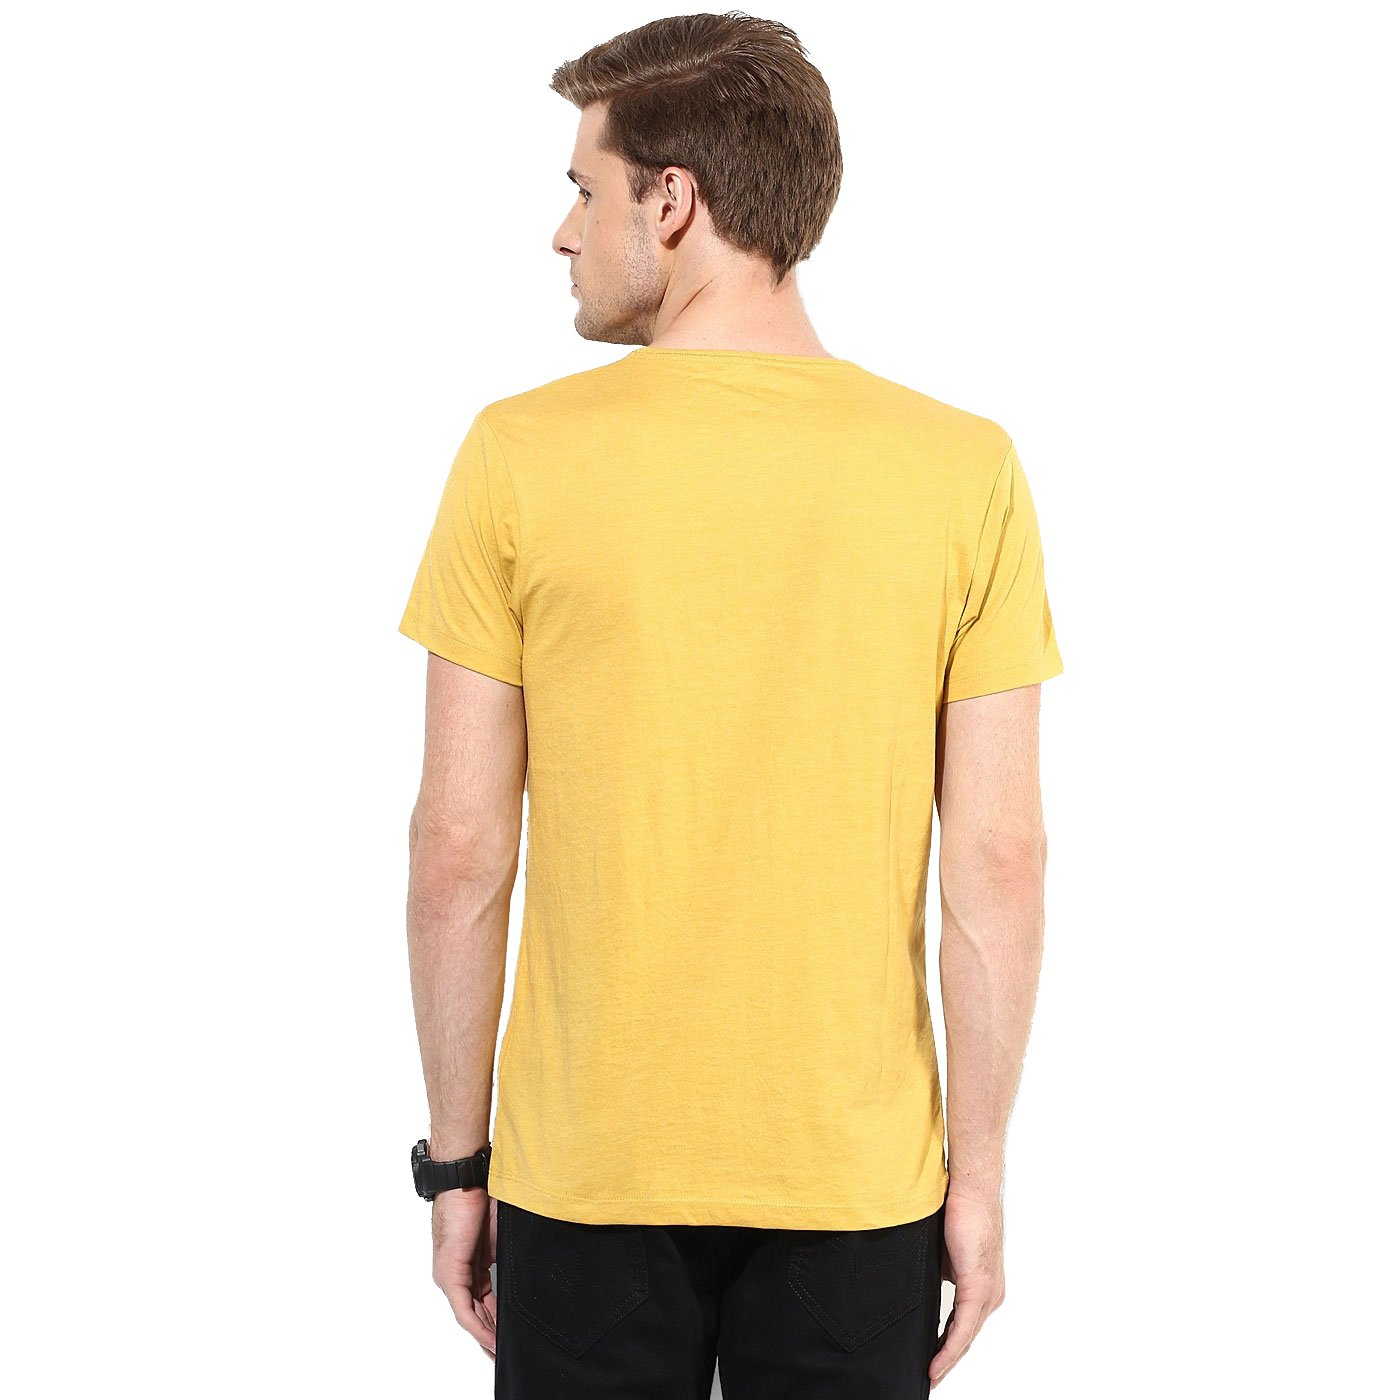 2e1e1ed668 T-Shirt Swag Beard and glasses cool desi logo face Printed Round neck 100%  Cotton graphic half sleeve tshirt for men.: Amazon.in: Clothing &  Accessories